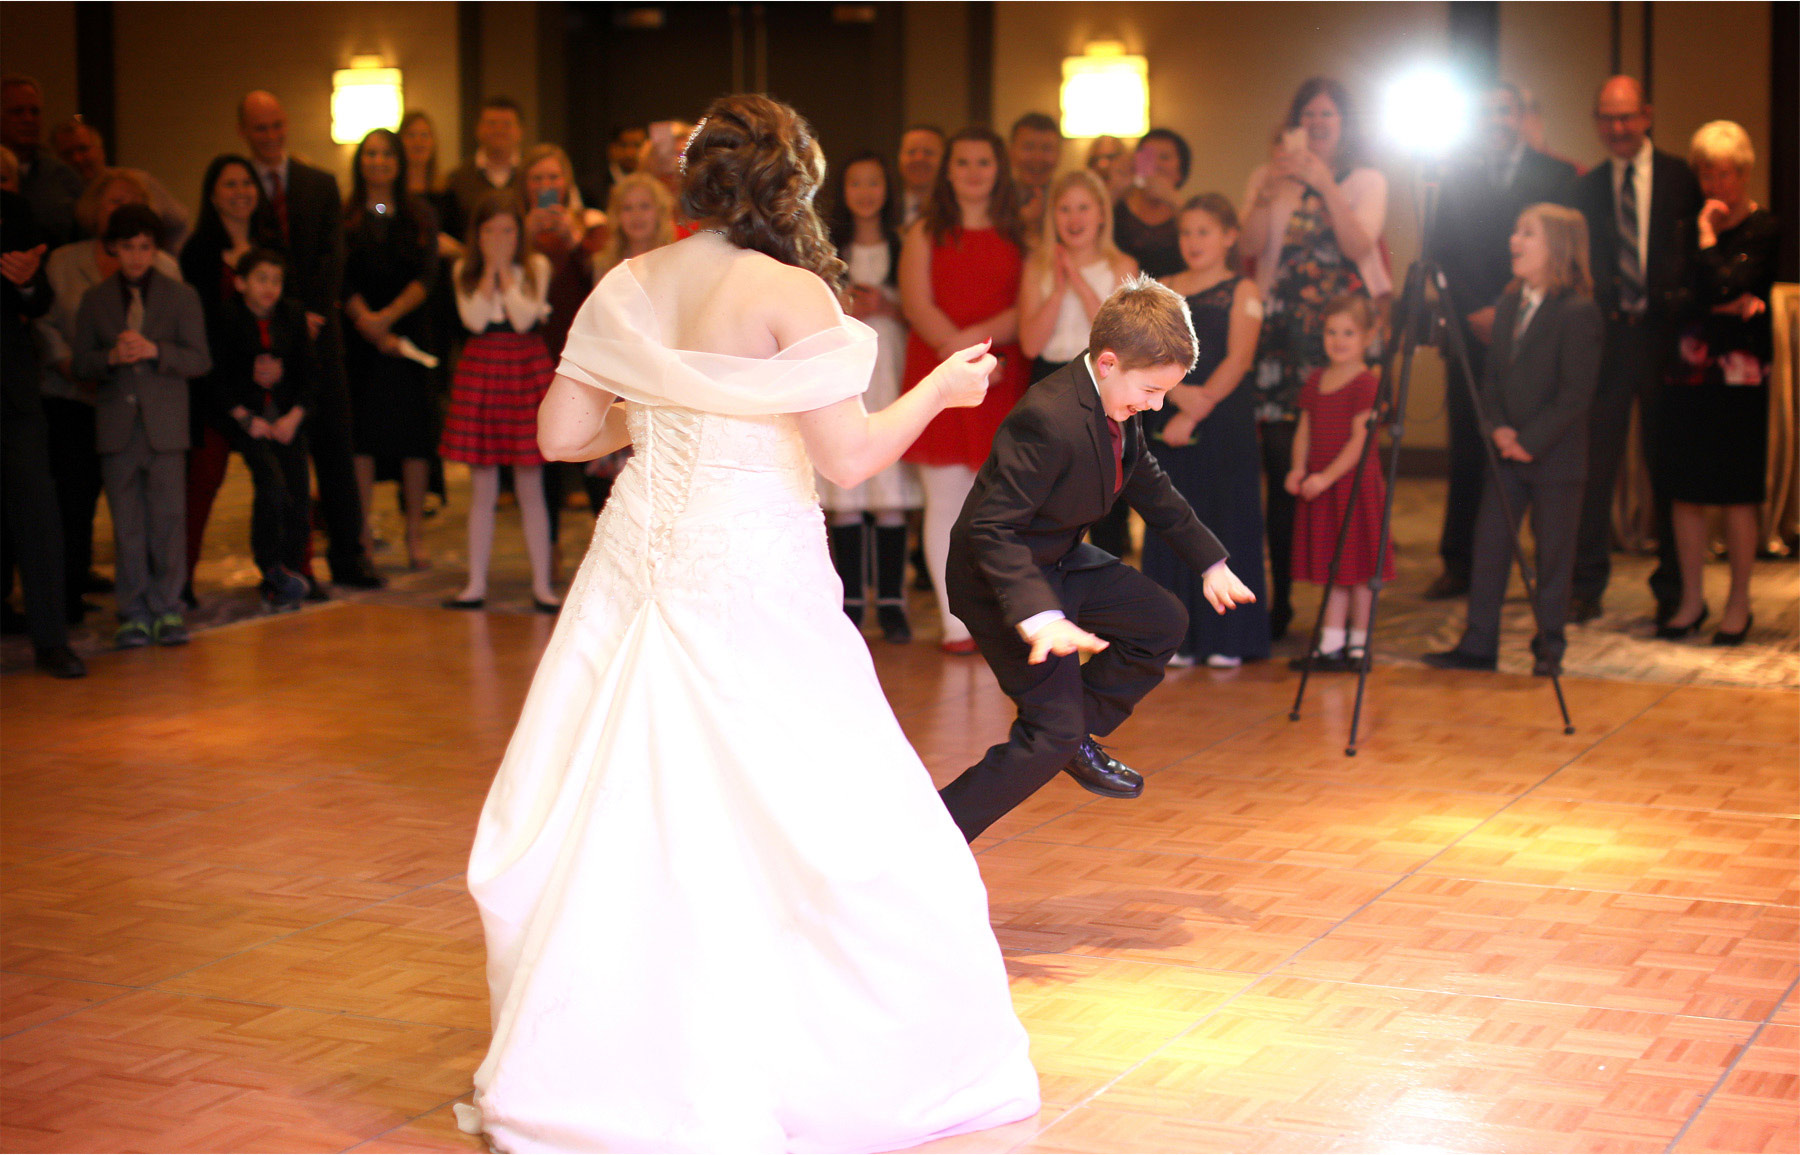 19-Minnetonka-Minnesota-Wedding-Photographer-by-Andrew-Vick-Photography-Winter-Marriott-Southwest-Reception-Bride-Dance-Ring-Bearer-Elizabeth-and-Brian.jpg.jpg